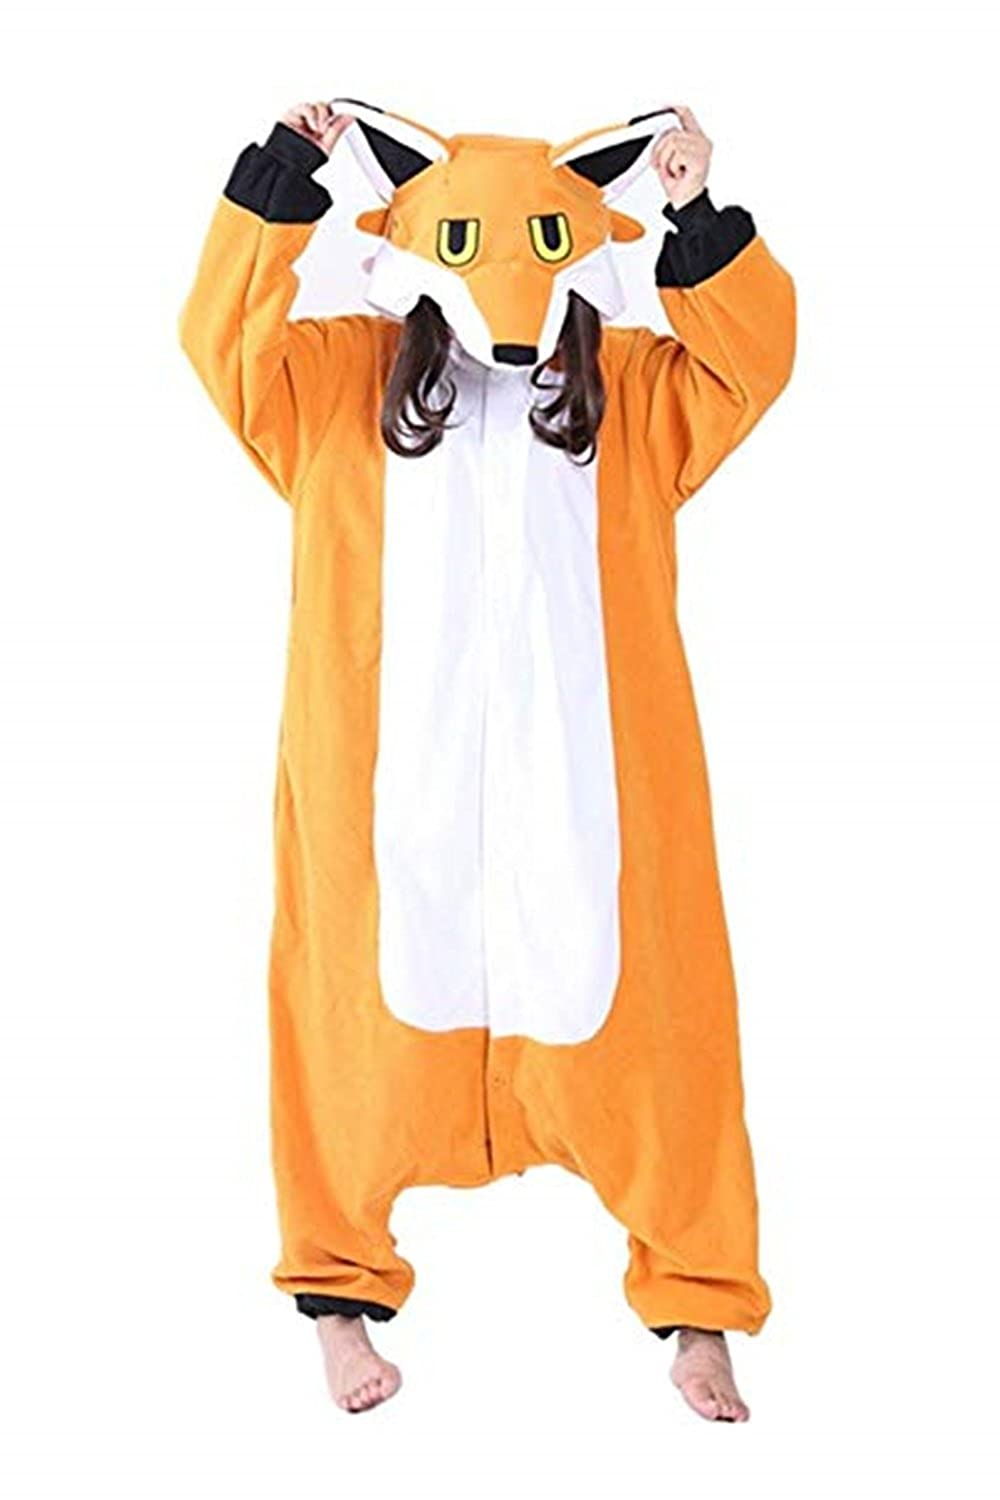 Songsongbear Fox Onesie Animal Cosplay Costume Adult Teens Halloween Xmas Pajamas